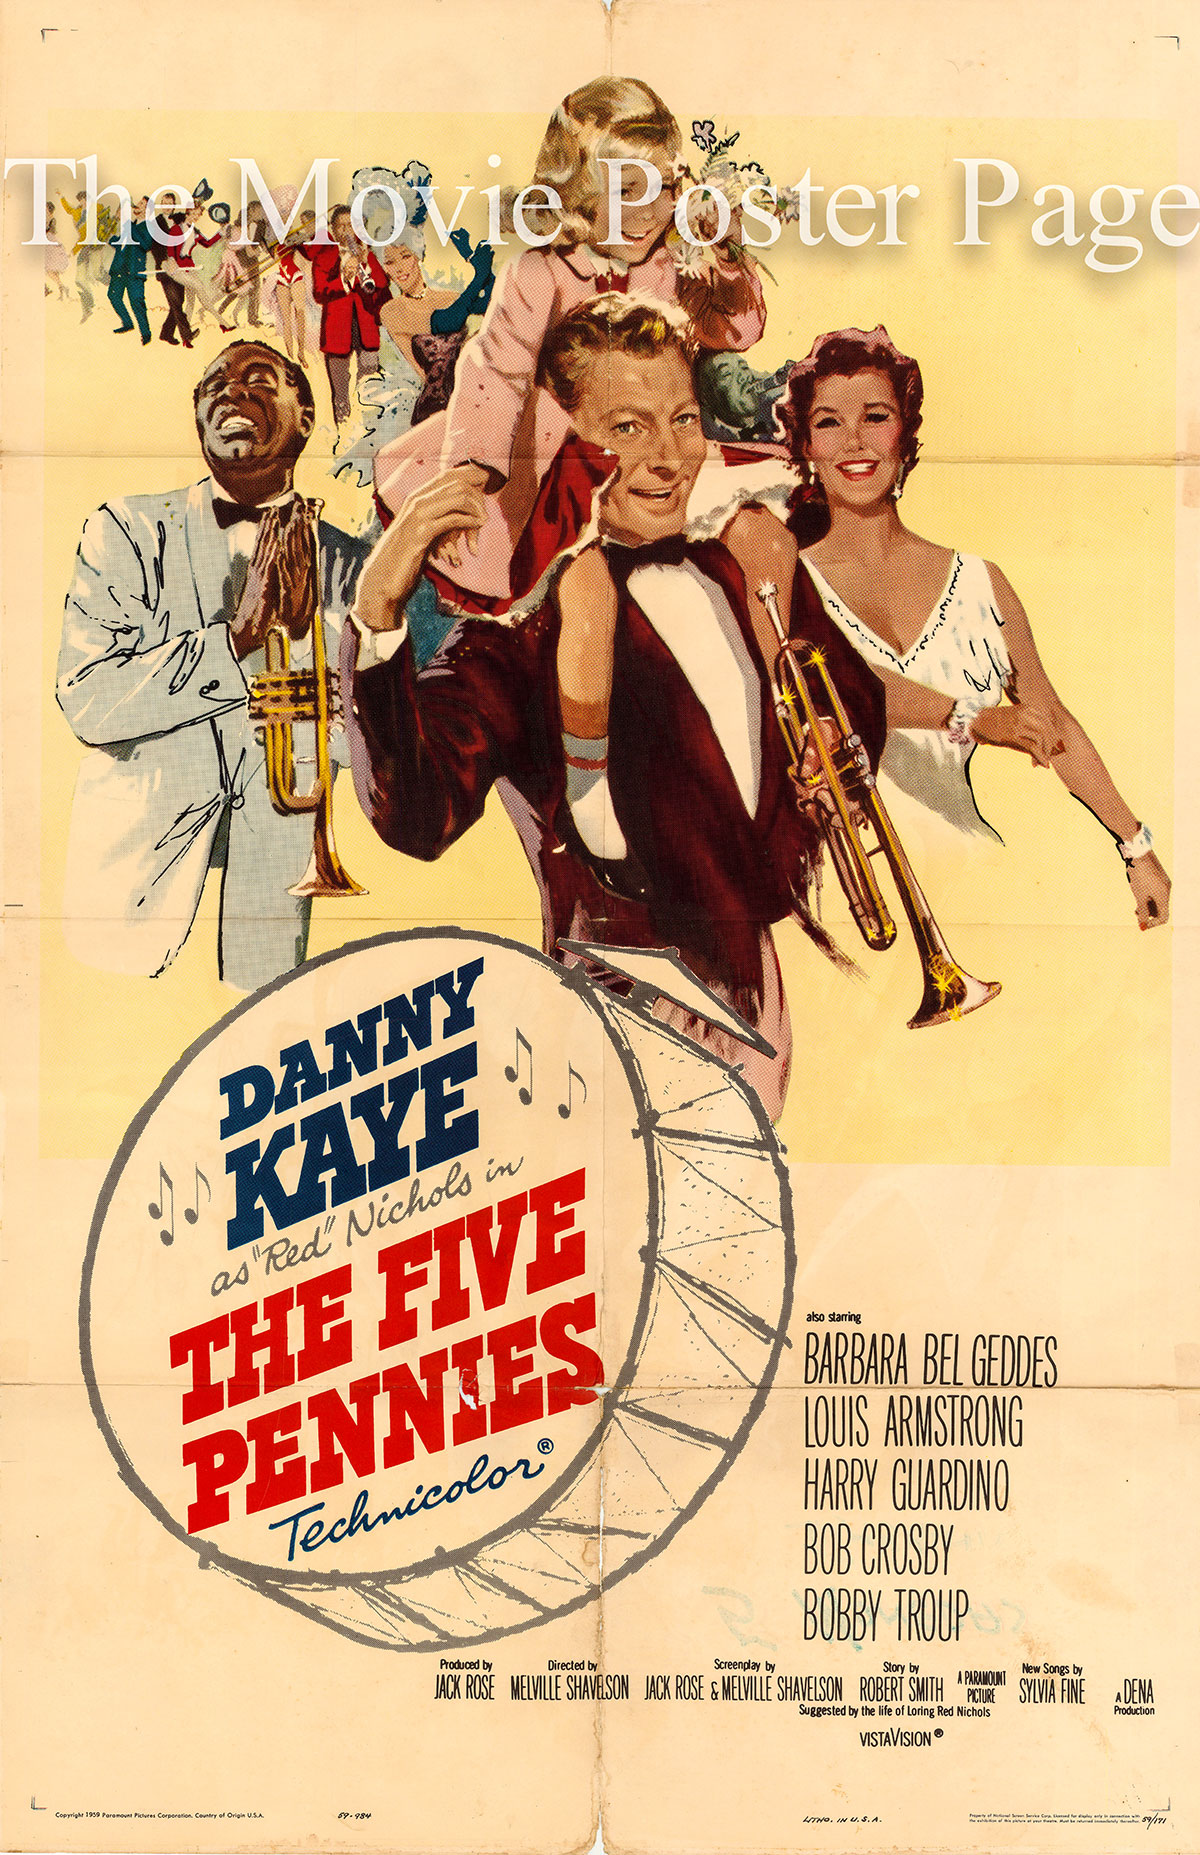 Pictured is a US promotional one-sheet poster for the 1959 Melville Shavelson film The Five Pennies starring Danny Kay as Red Nichols.